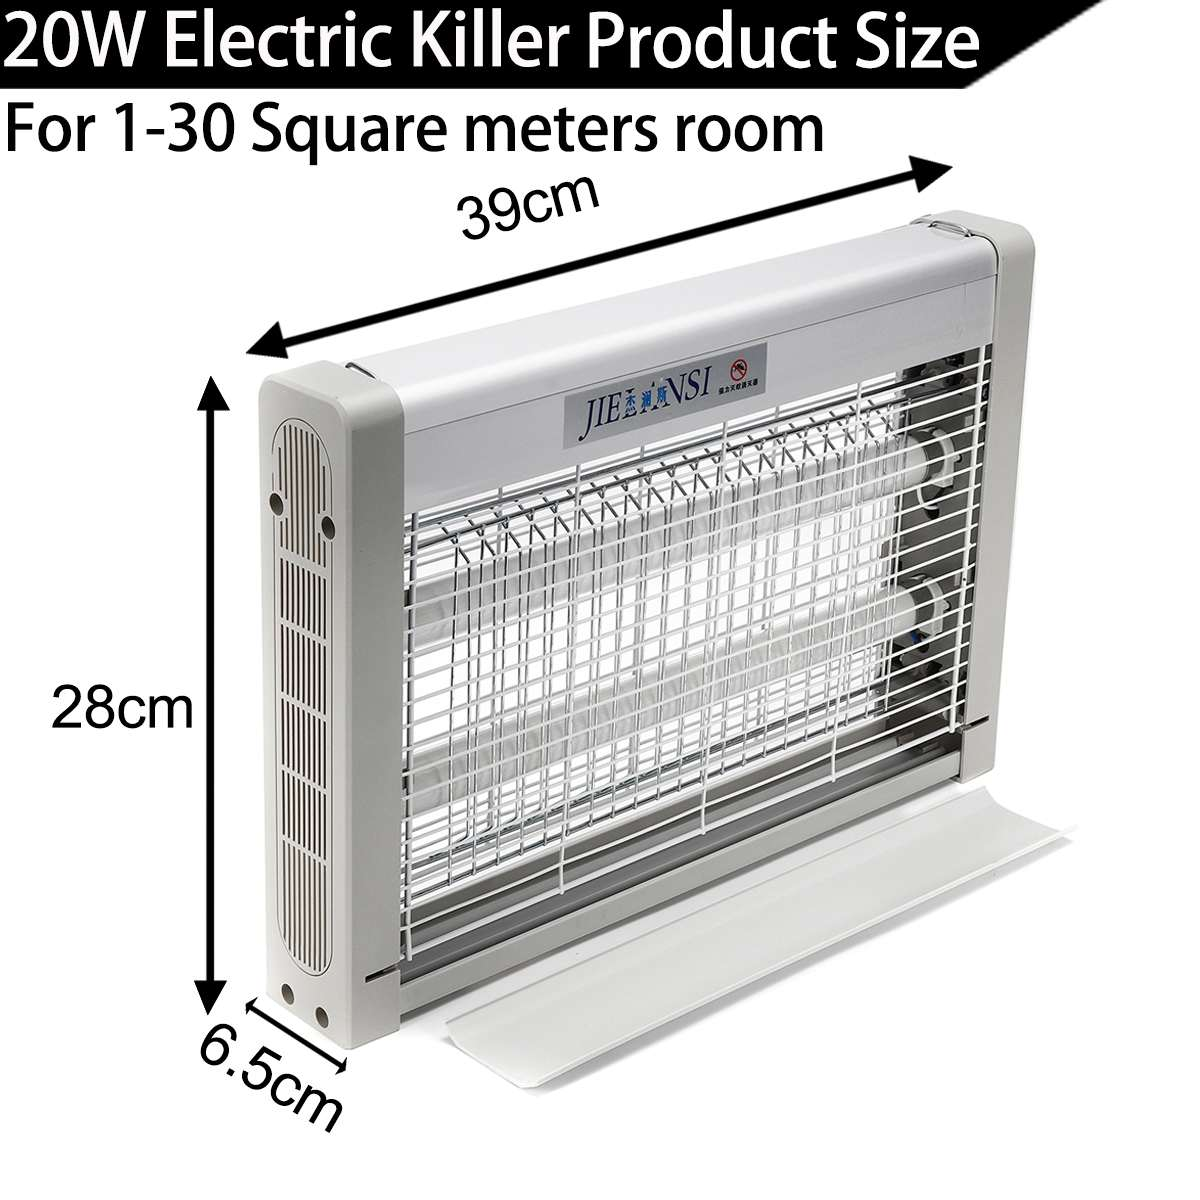 Insect Lights 220v 20w Electric Night Fly Pest Zapper Anti Mosquito Lamp Led Electronics Light Uv Control Bug Trap Killer DI29EH